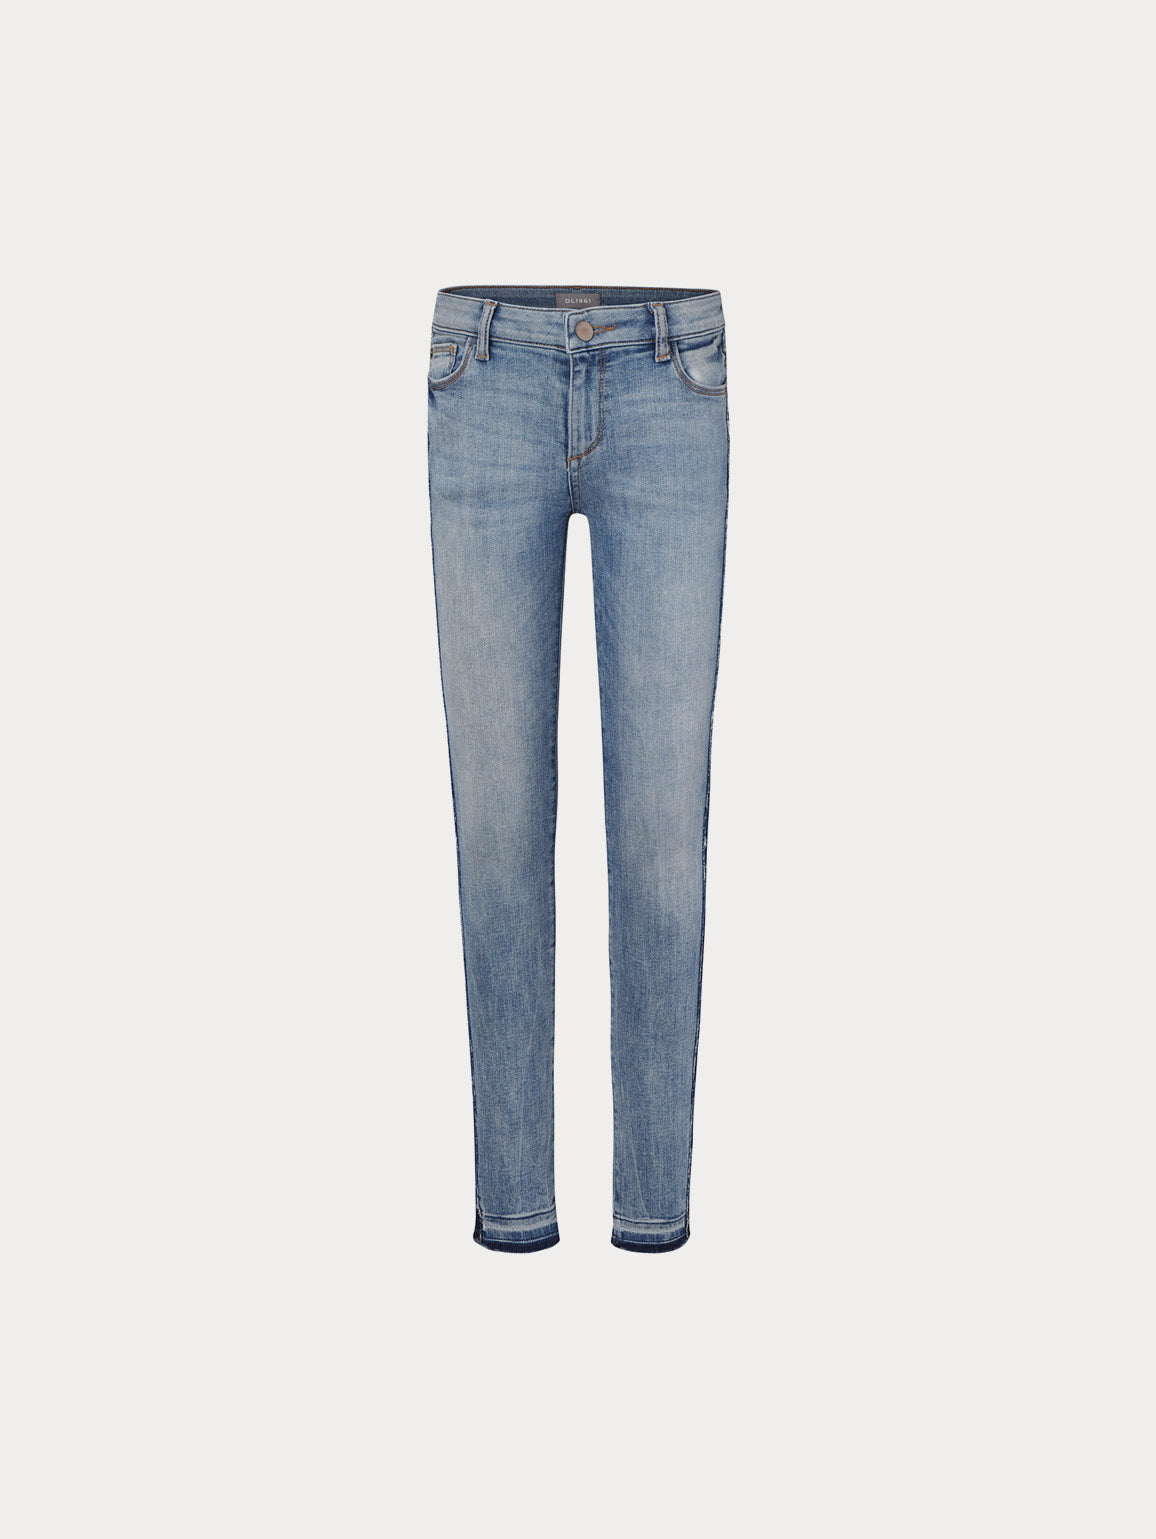 Chloe Toddler Skinny | Ocean View - DL1961